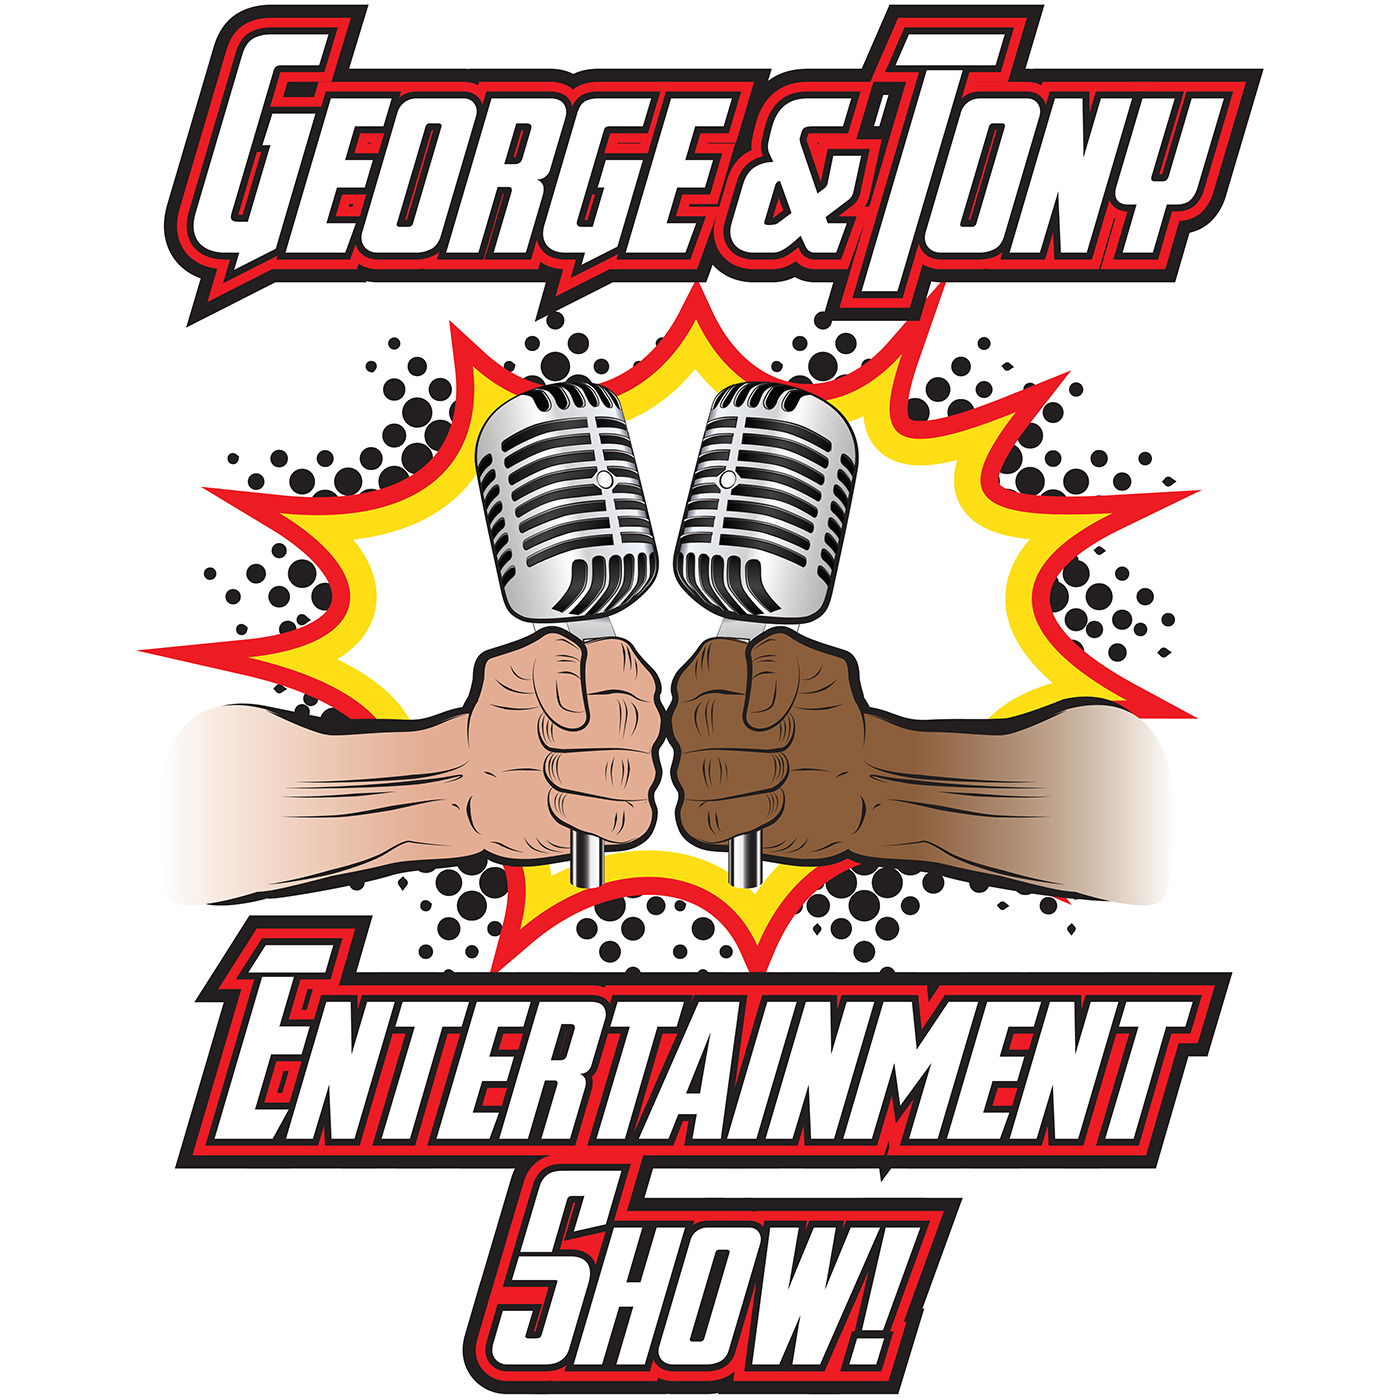 George and Tony Entertainment Show #53